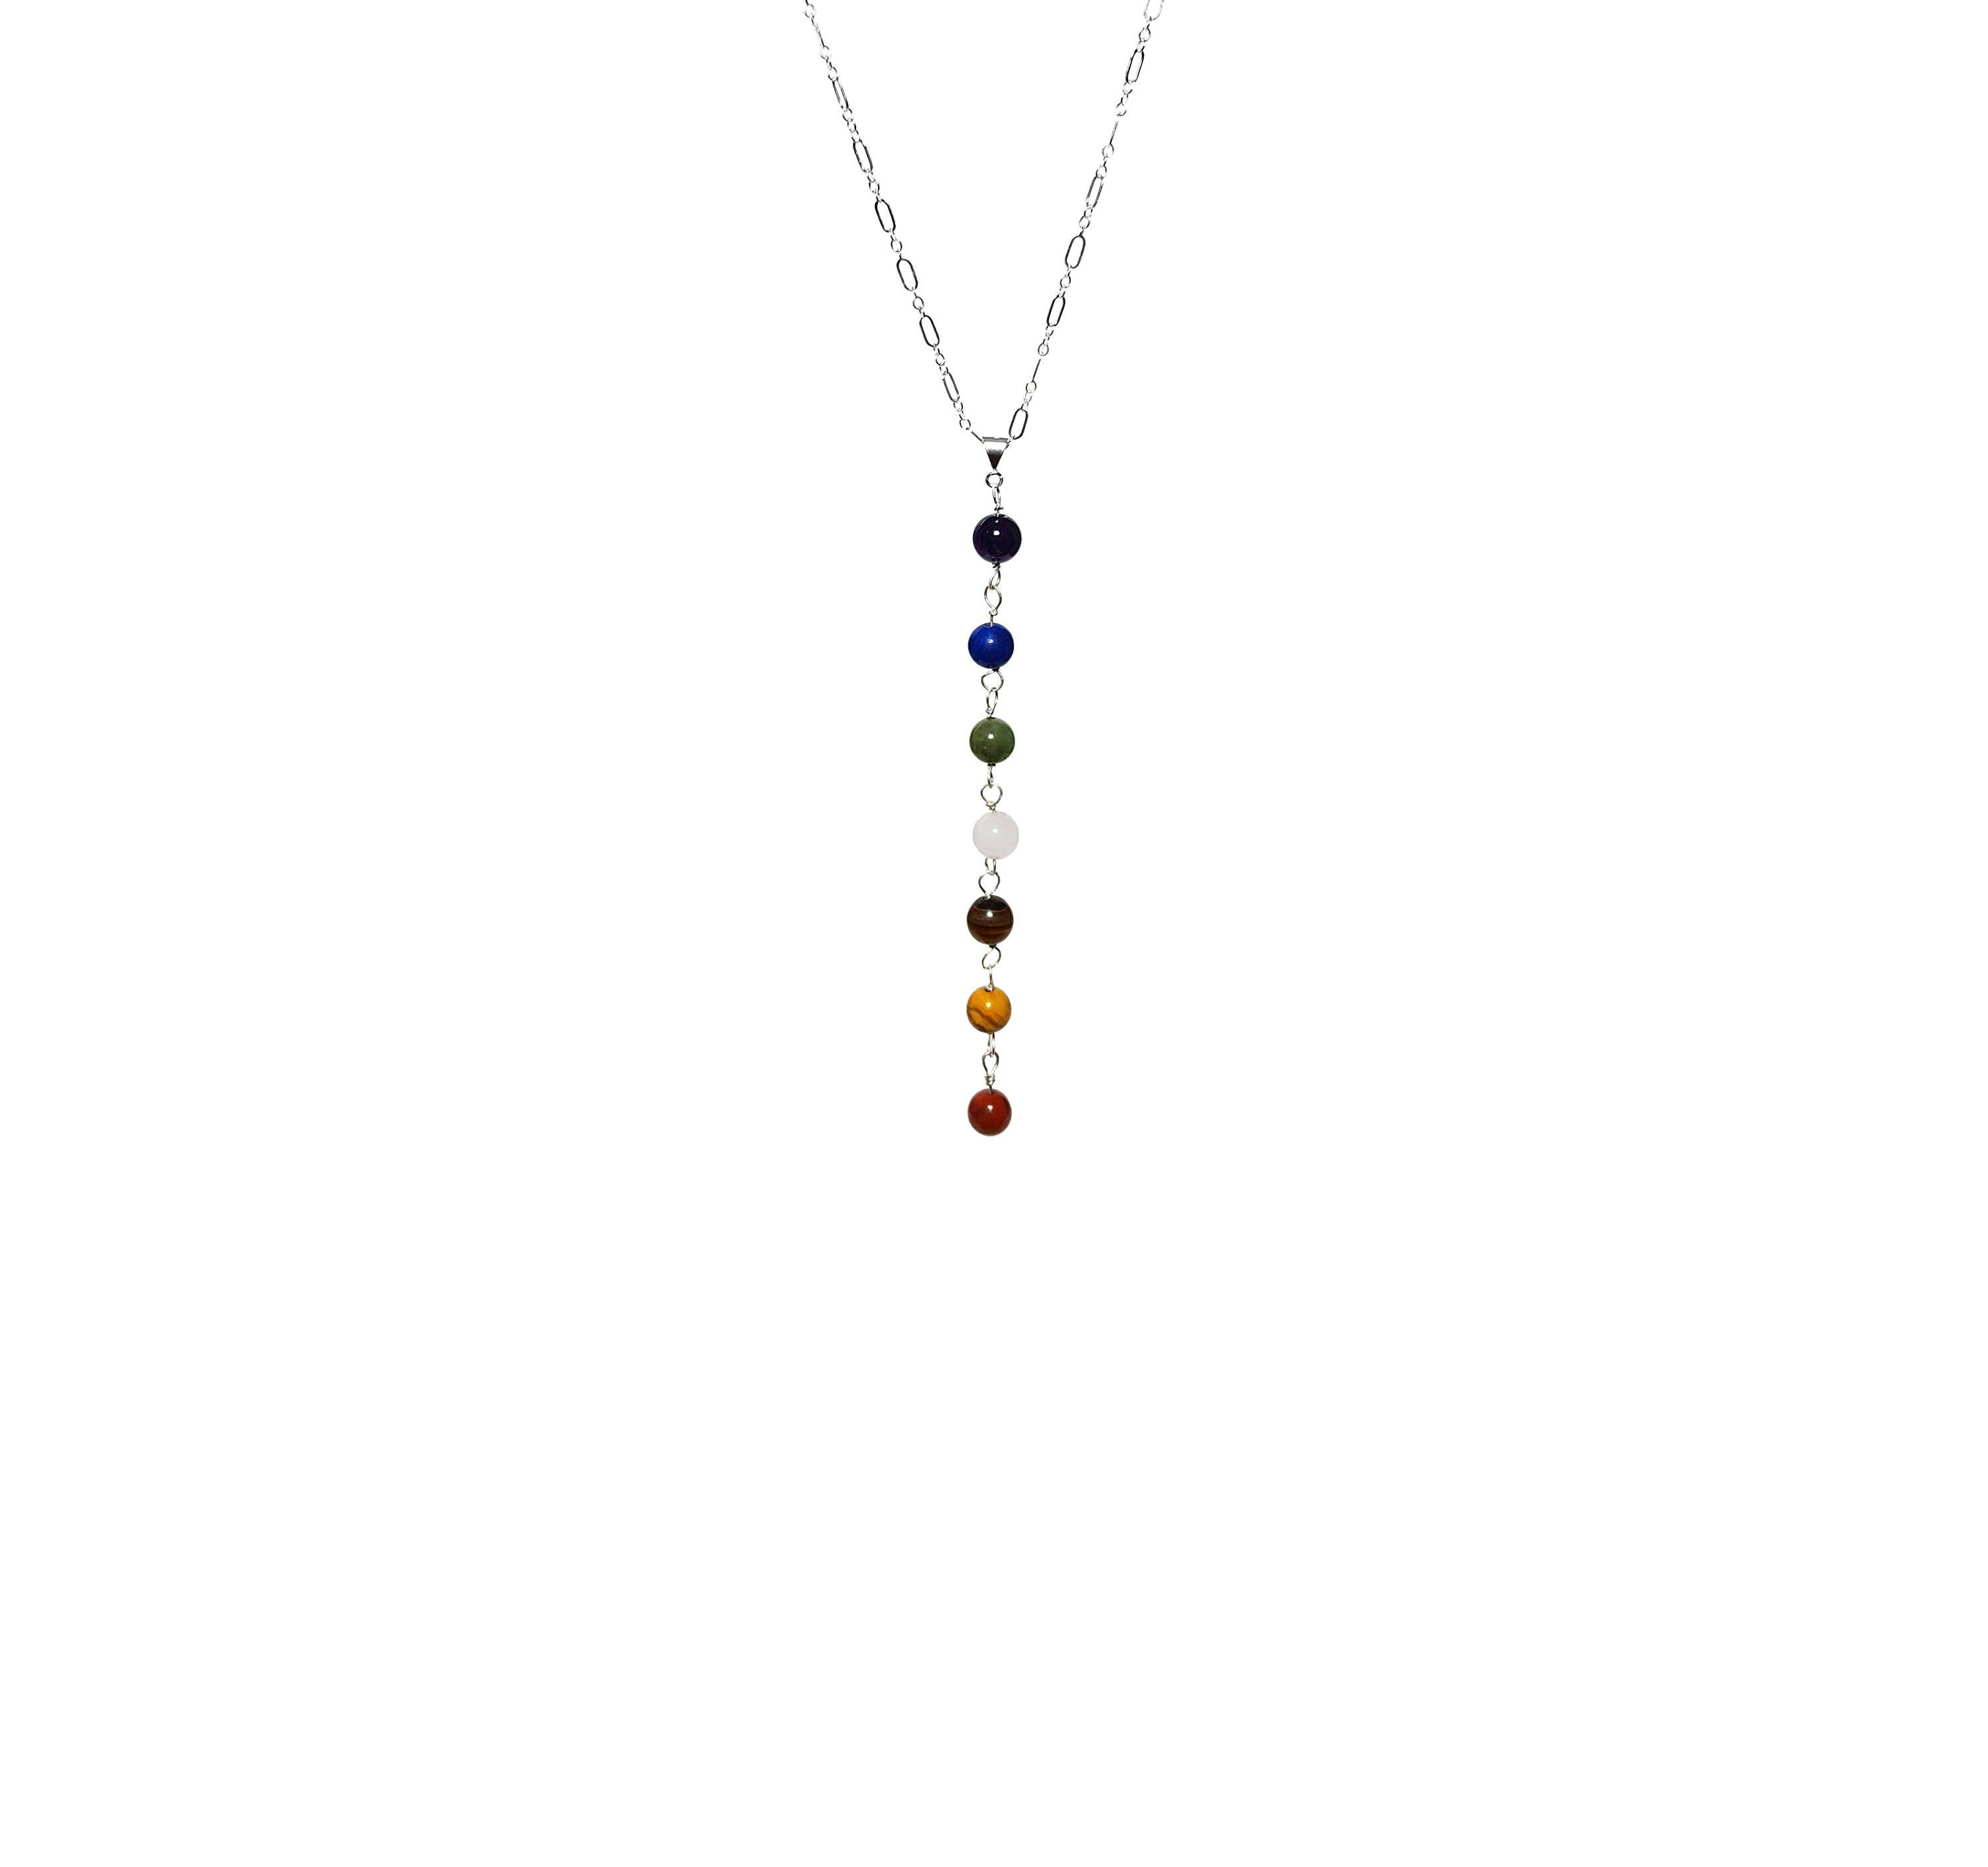 925 silver 7 chakra gemstone necklace sterling silver chain and 925 silver 7 chakra gemstone necklace sterling silver chain and links chakra balancing pendant meditation yoga gift gift for her mozeypictures Image collections